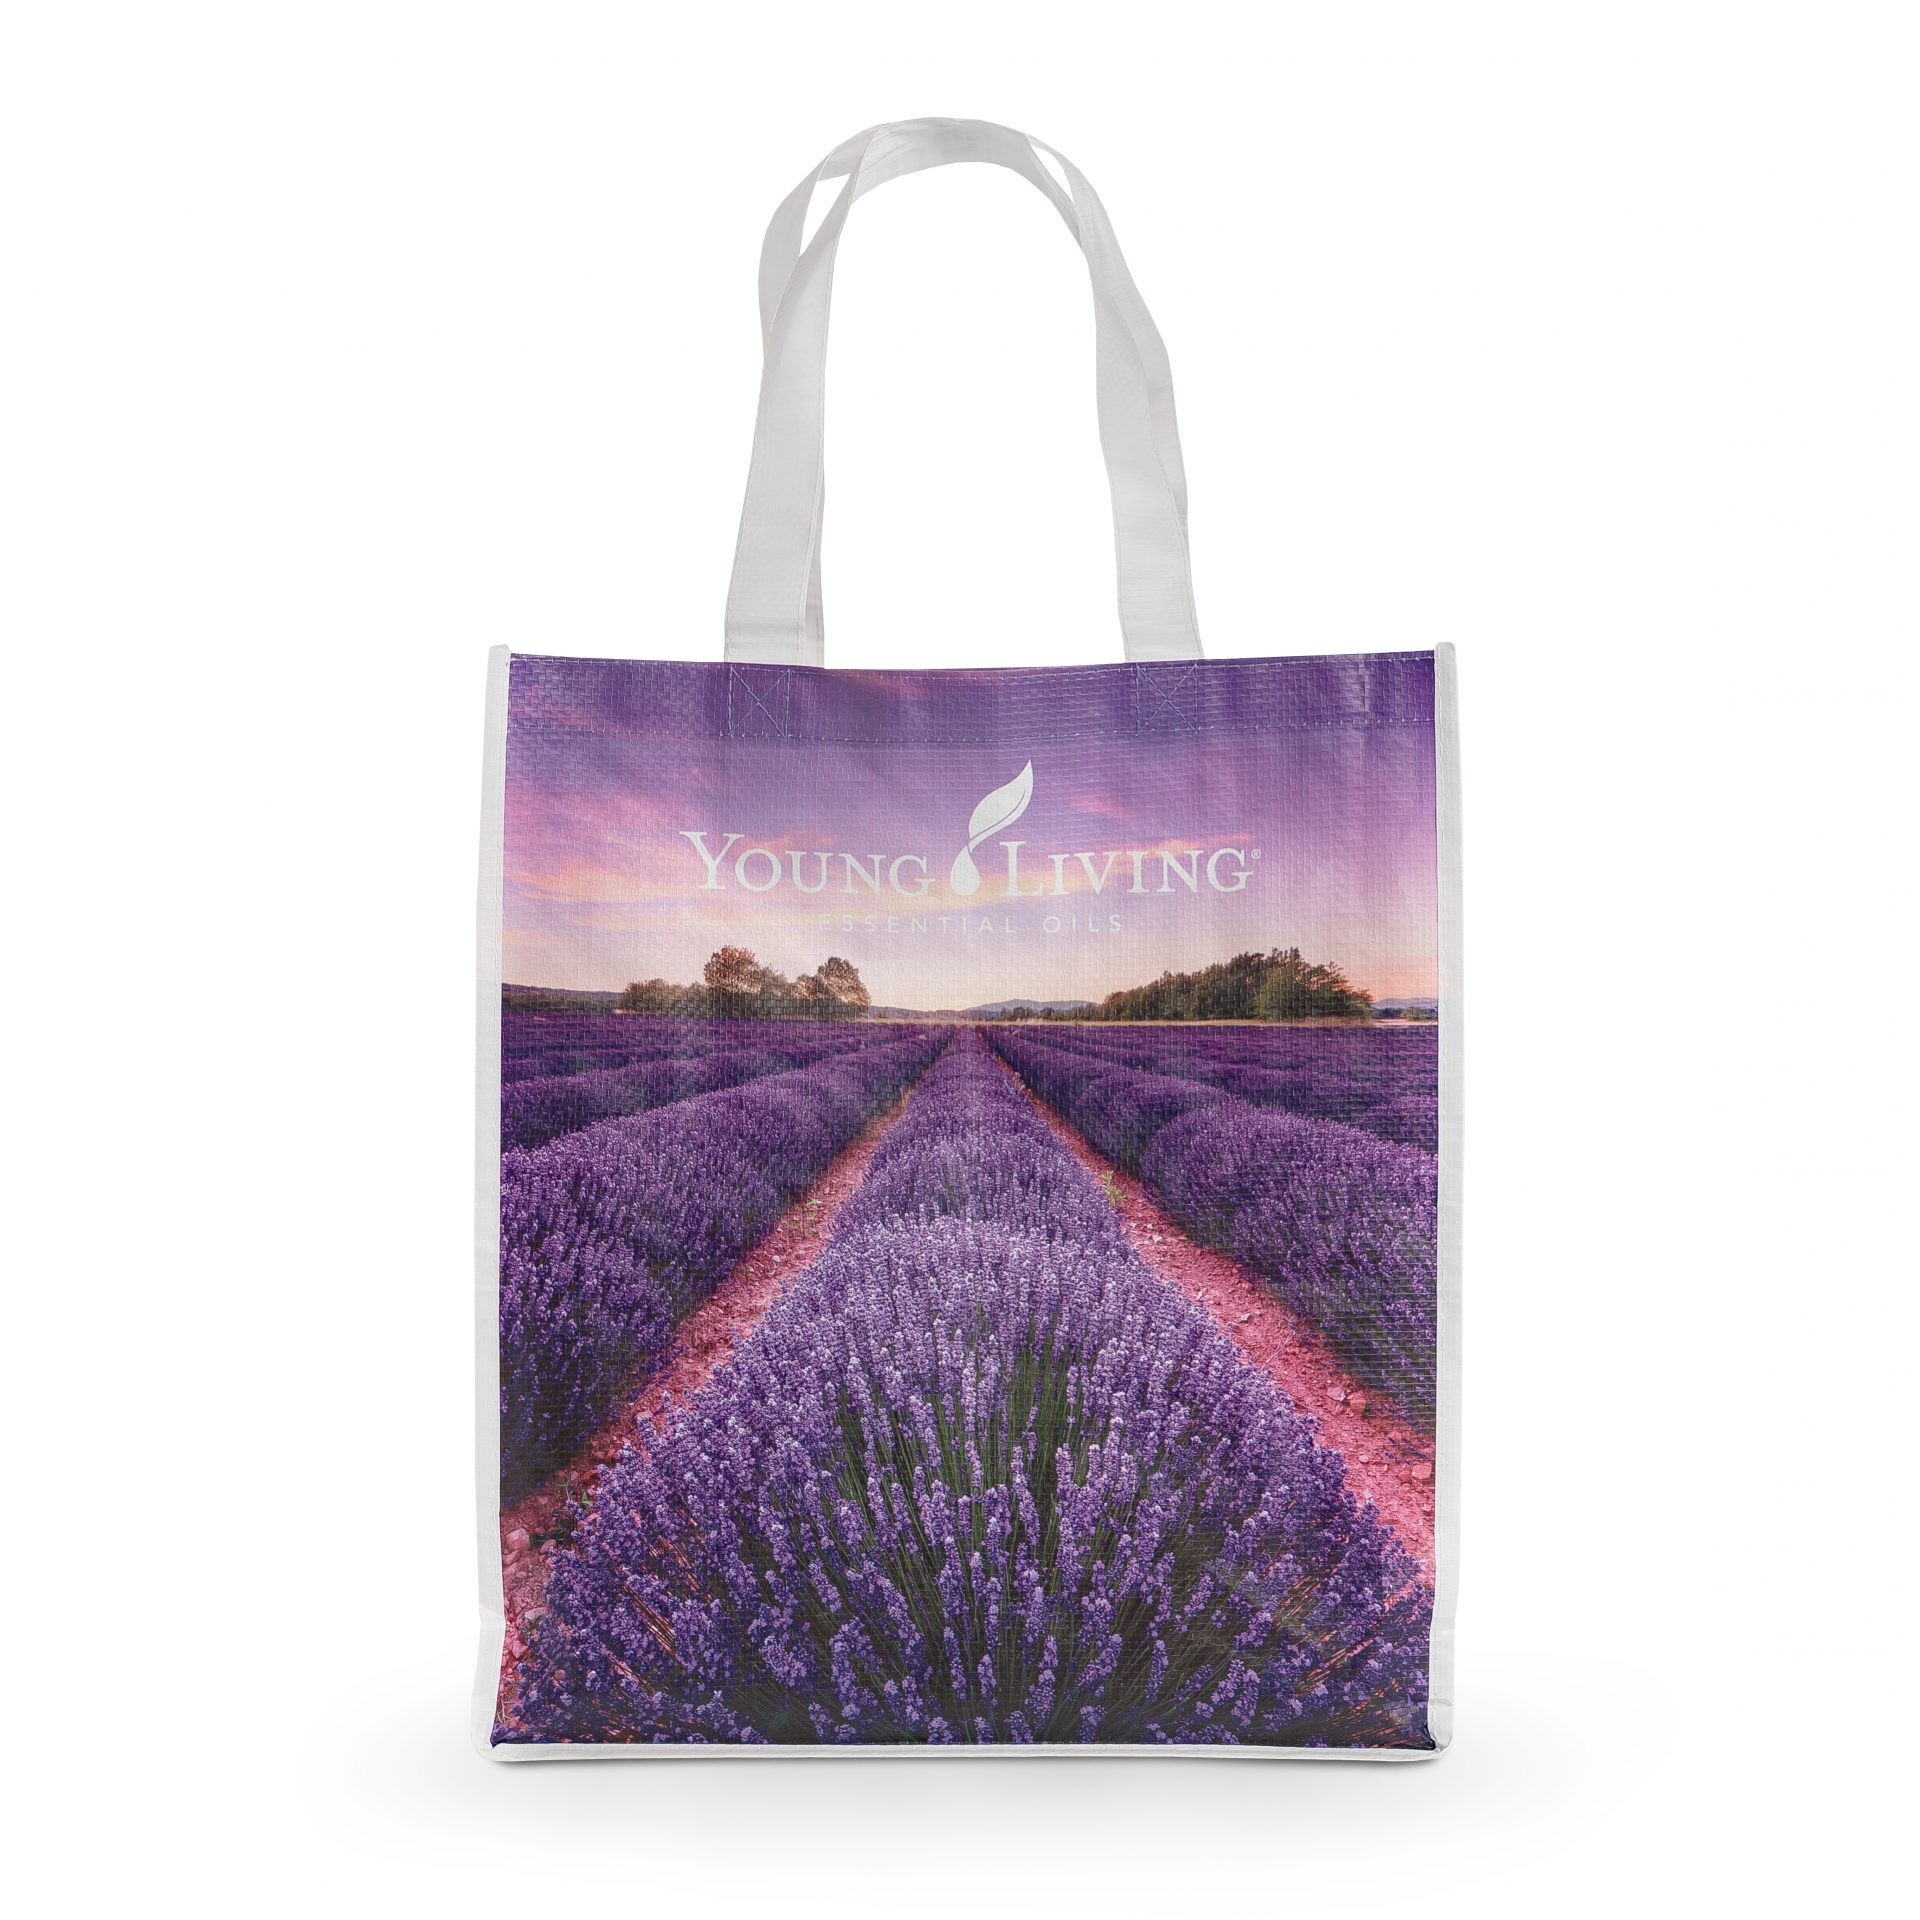 YL gear lavender shopping tote